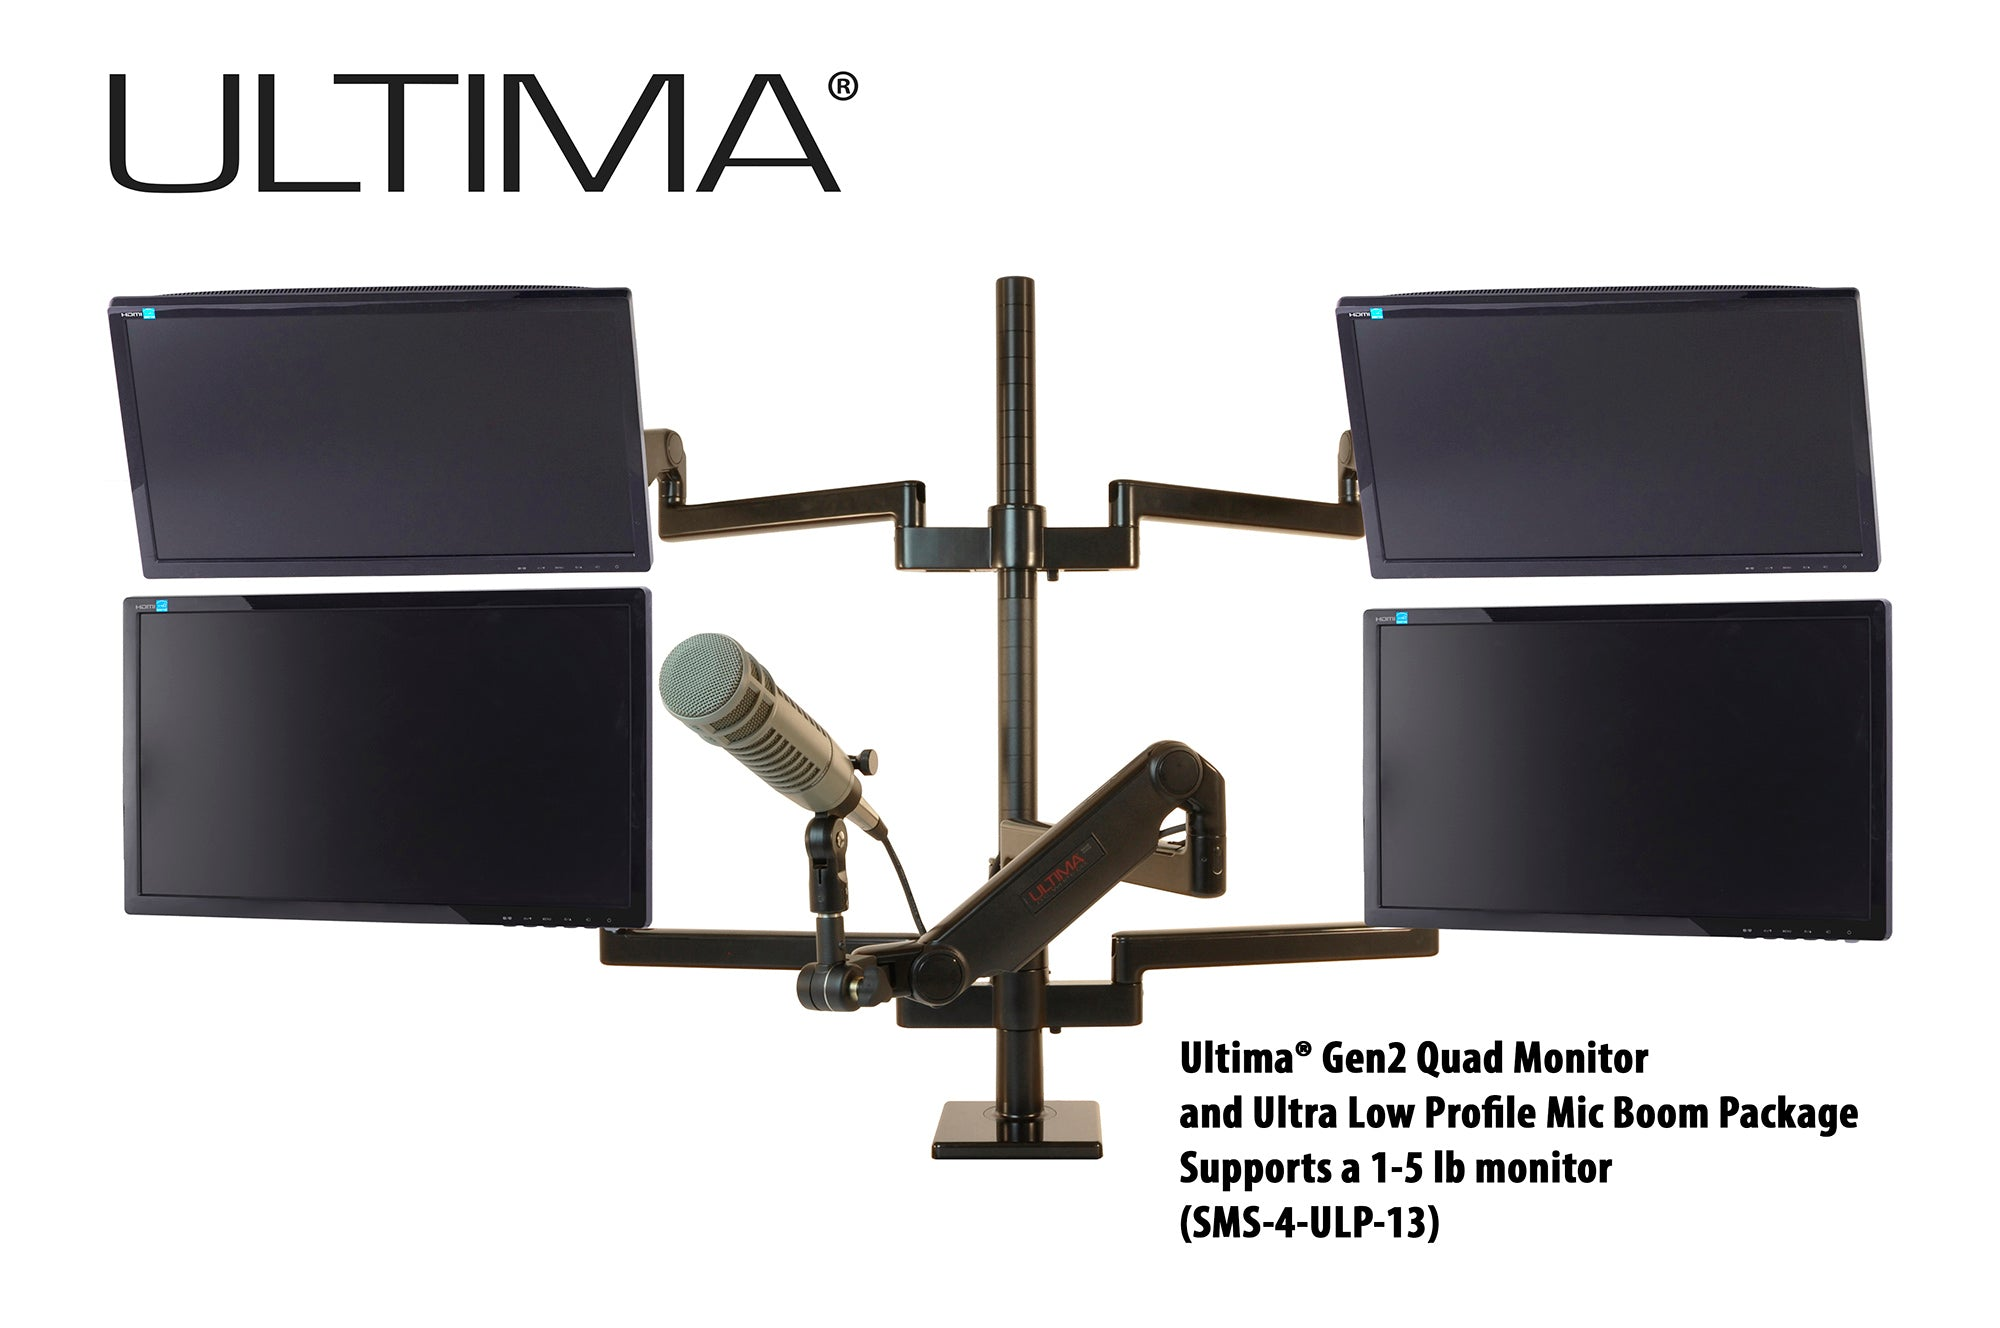 OC White SMS-4-ULP-13 & SMS-LD-4-ULP-13 Series ProBoom® Ultima® Gen2 Quad Monitor and Single Low Profile Mic Boom SMS Package - 305broadcast